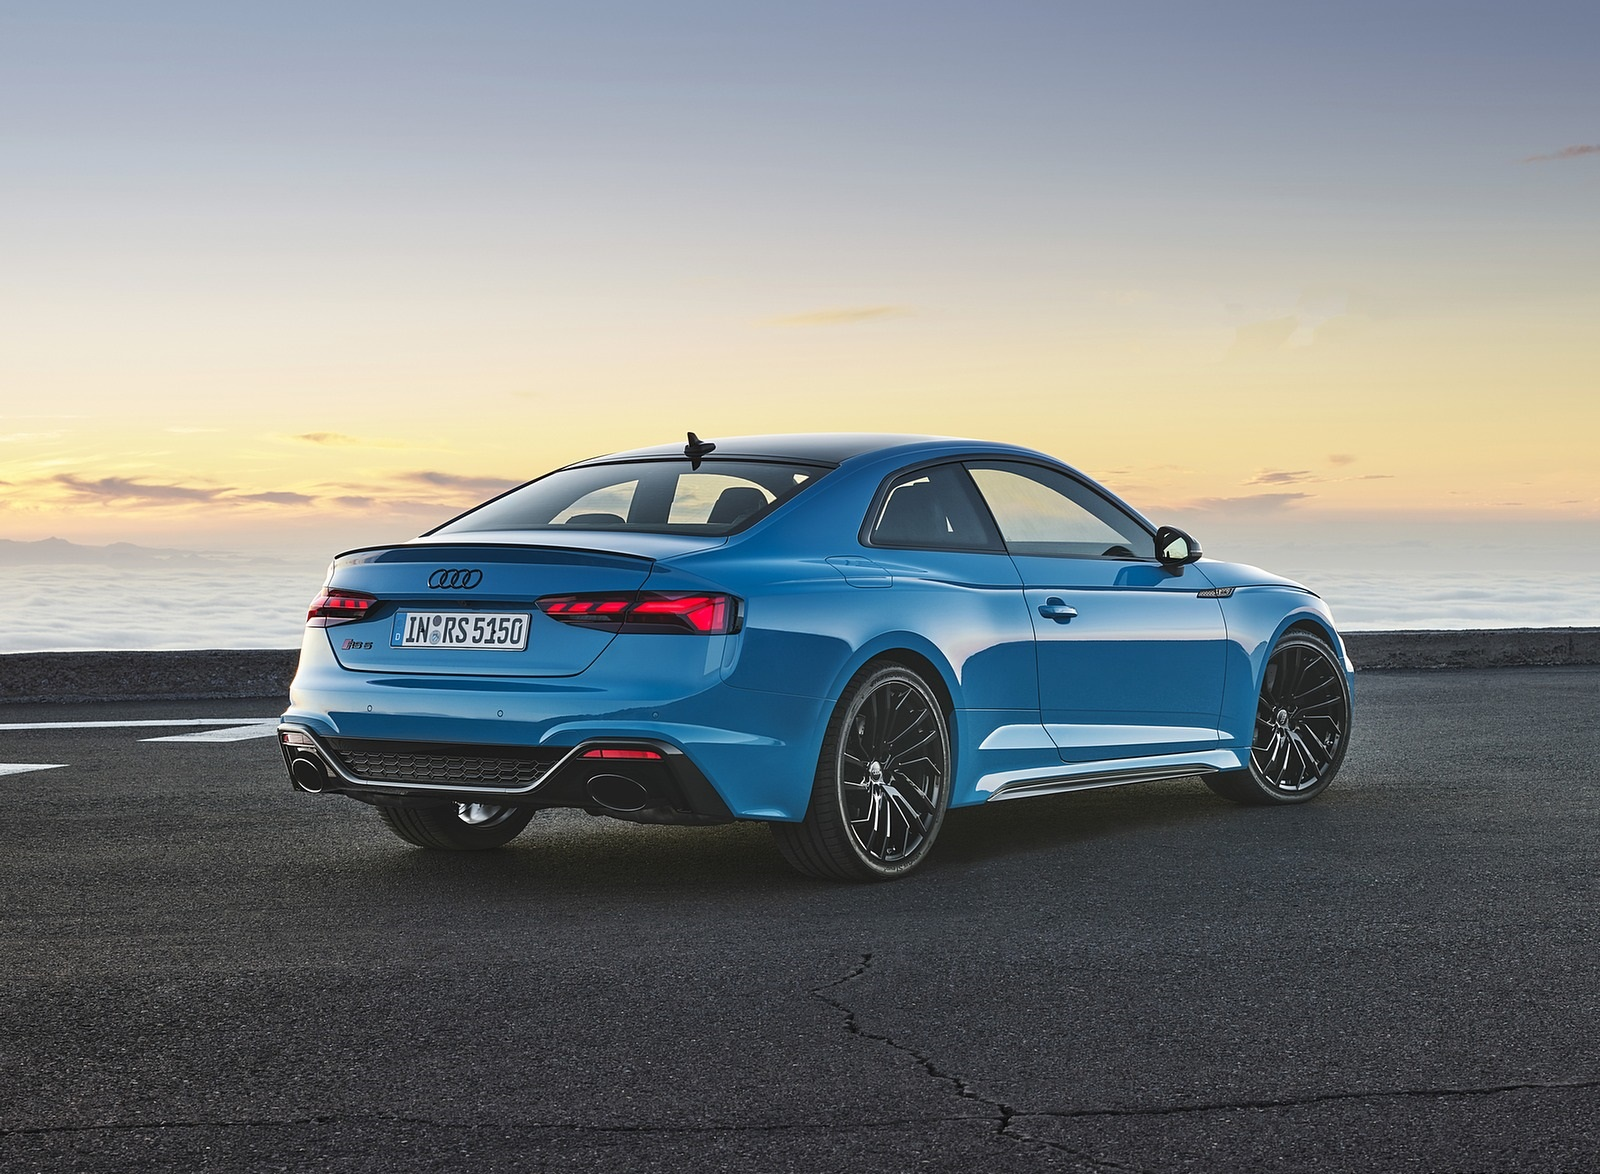 2020 Audi RS 5 Coupe (Color: Turbo Blue) Rear Three-Quarter Wallpapers (9)